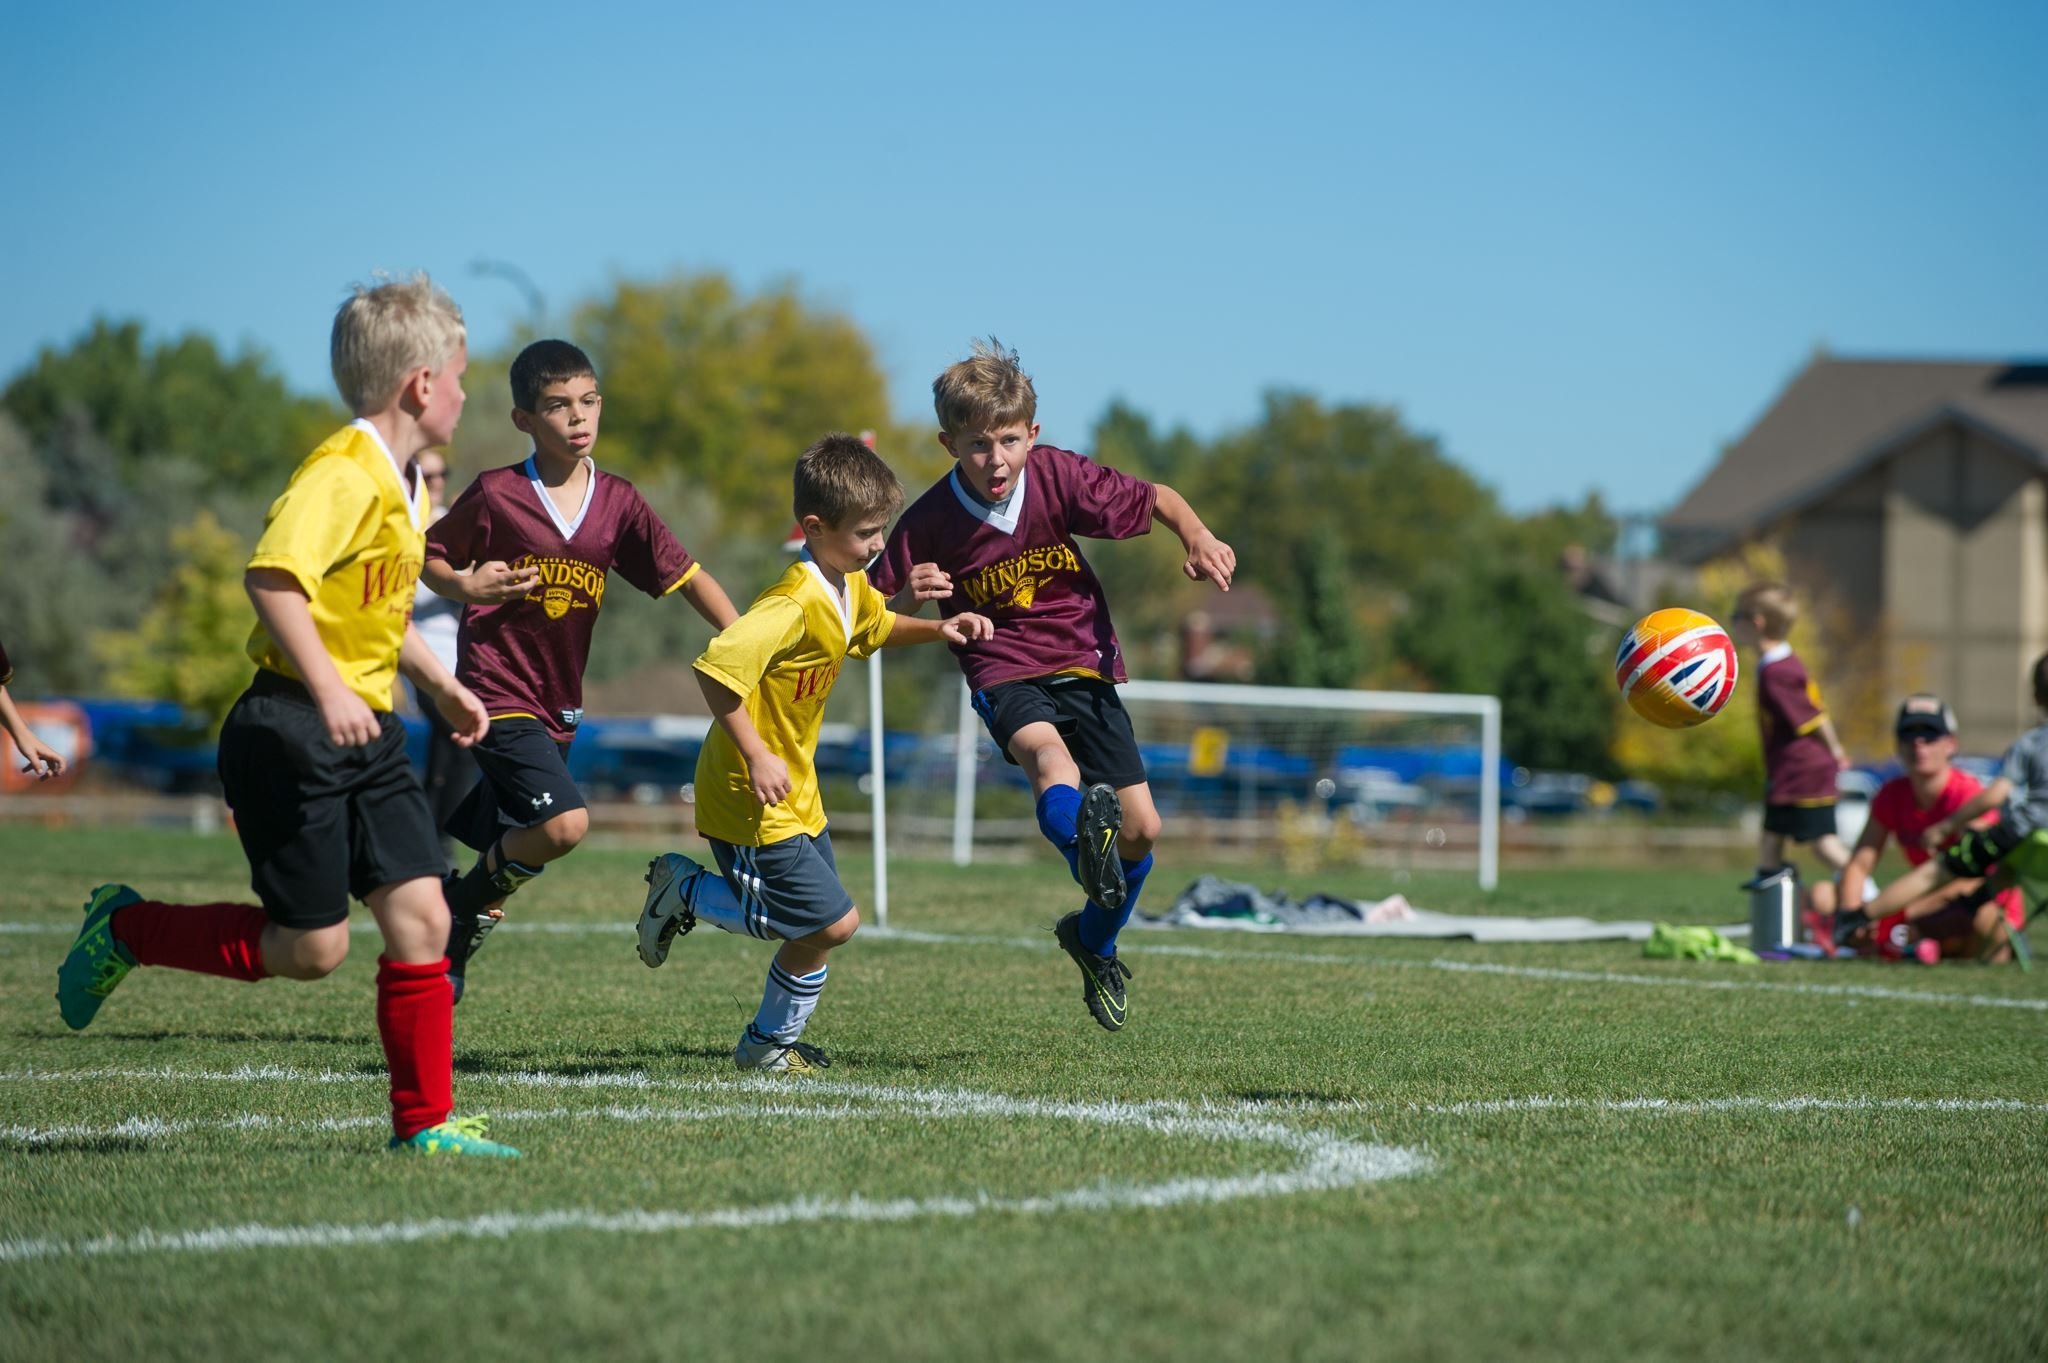 Boys Run on Soccer Field Toward Soccer Ball